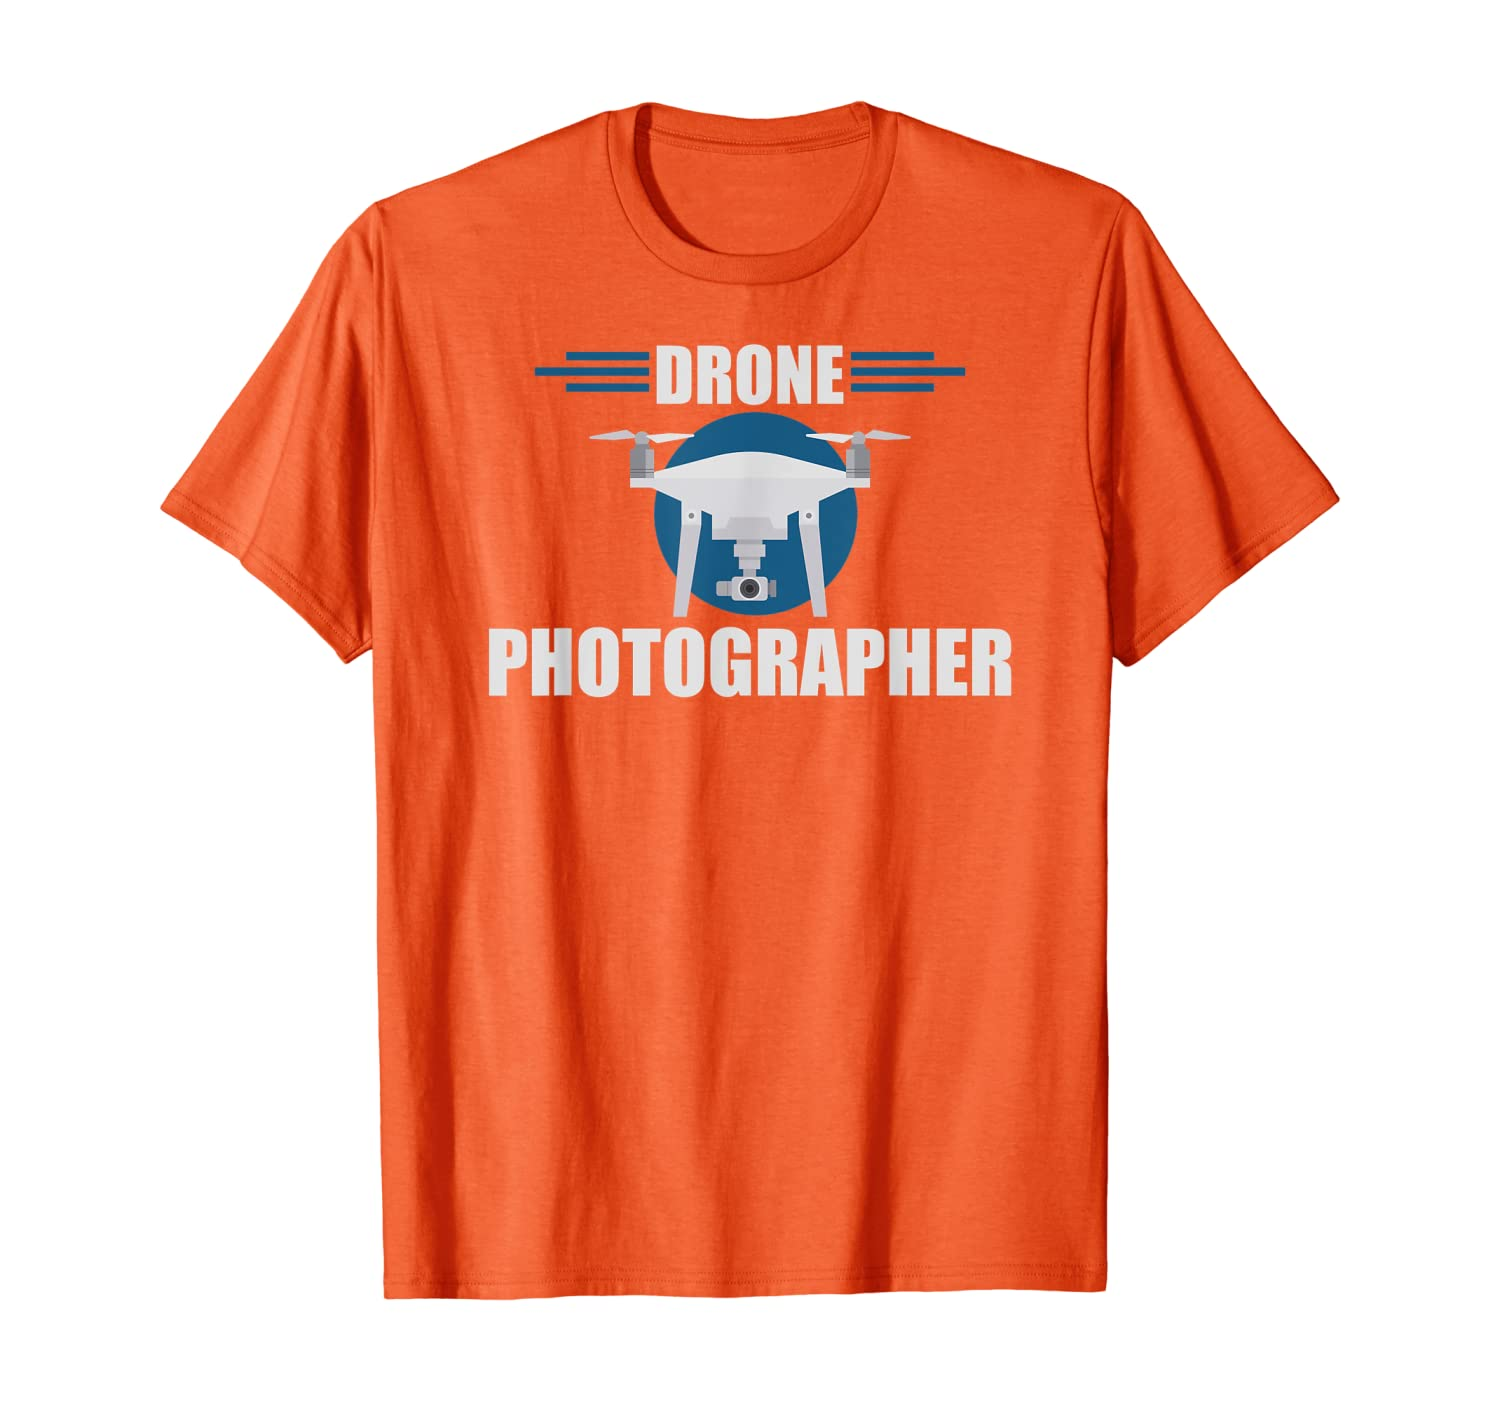 Drone Photographer Flying Pilot Photography T-Shirt